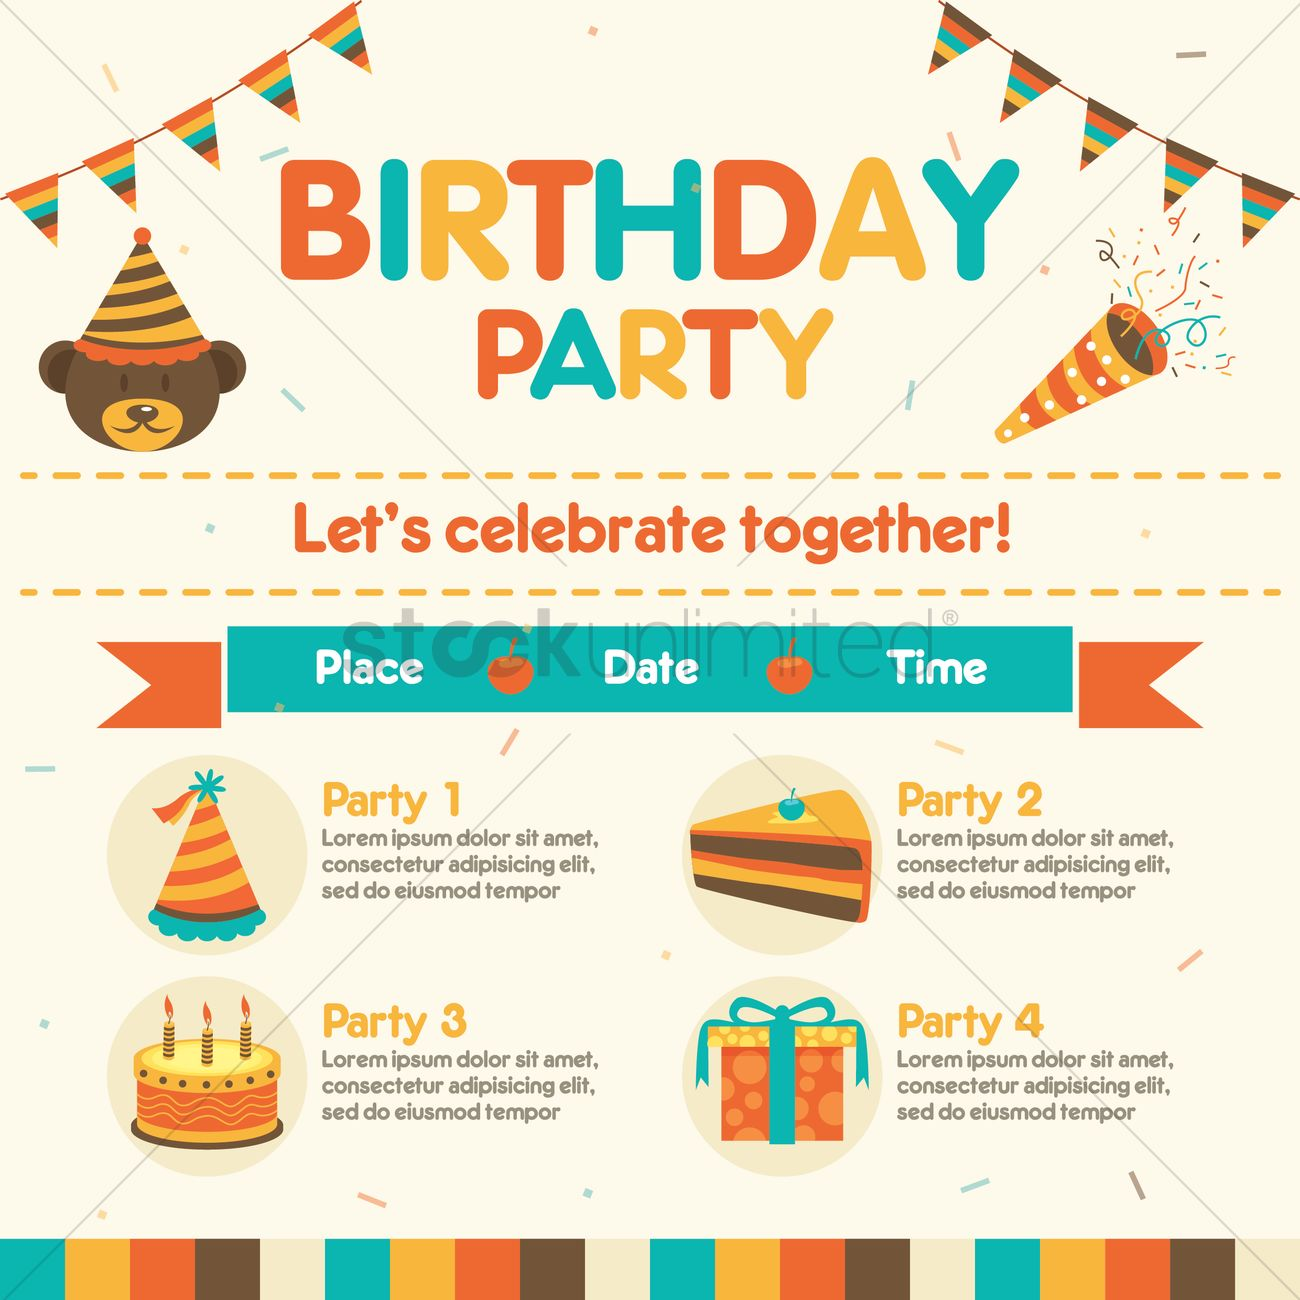 Infographic of birthday party Vector Image 1514328 StockUnlimited